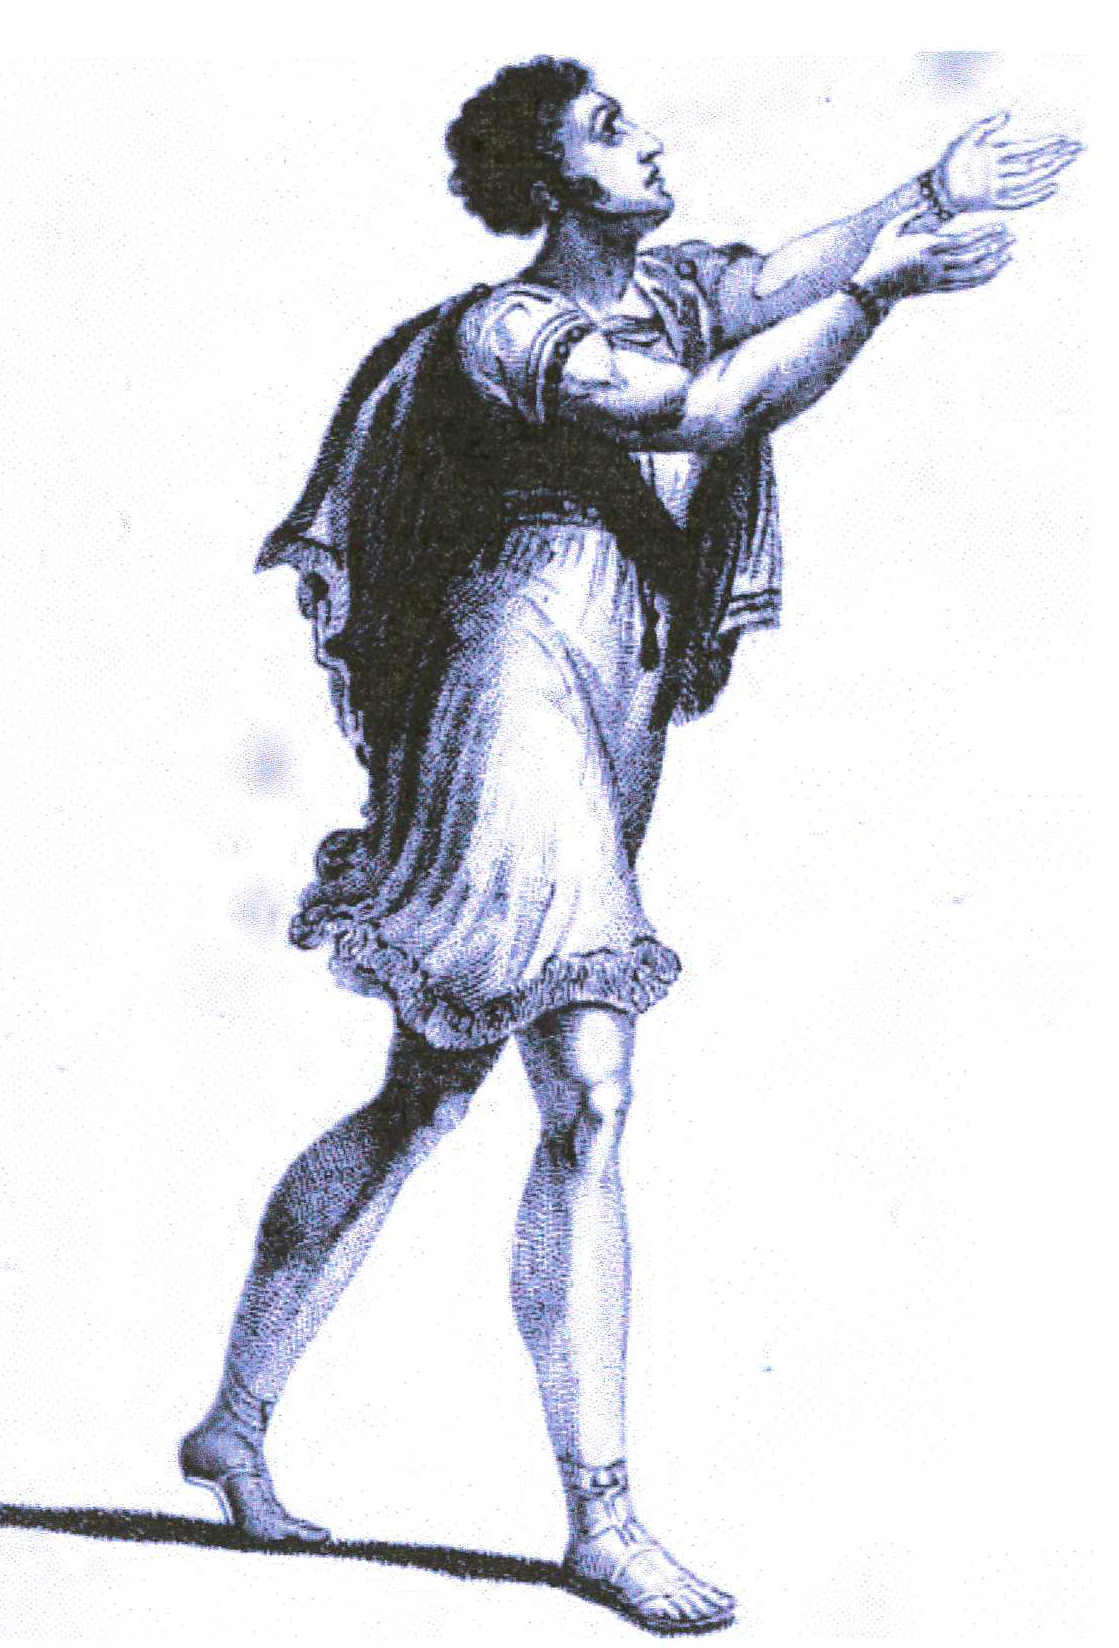 <b>Sublime Adoration Gesture</b>     	</br>Developed in the 19th century, systems of rhetorical gestures influenced the acting styles of melodramatic performers. This interpretation of sublime adoration comes from a system of rhetorical gestures and actions that was adapted to the English stage by Henry Siddons.</br><br/><b>Source: </b><i>Sublime Adoration in Henry Siddons, Illustrations of Gesture and Action, 2nd ed. (London: Sheerwood, Neely, and Jones, 1822), Plate LXV, http://books.google.com/books/about/Practical_Illustrations_of_Rhetorical_Ge.html?id=iSsLAAAAIAAJ</i>